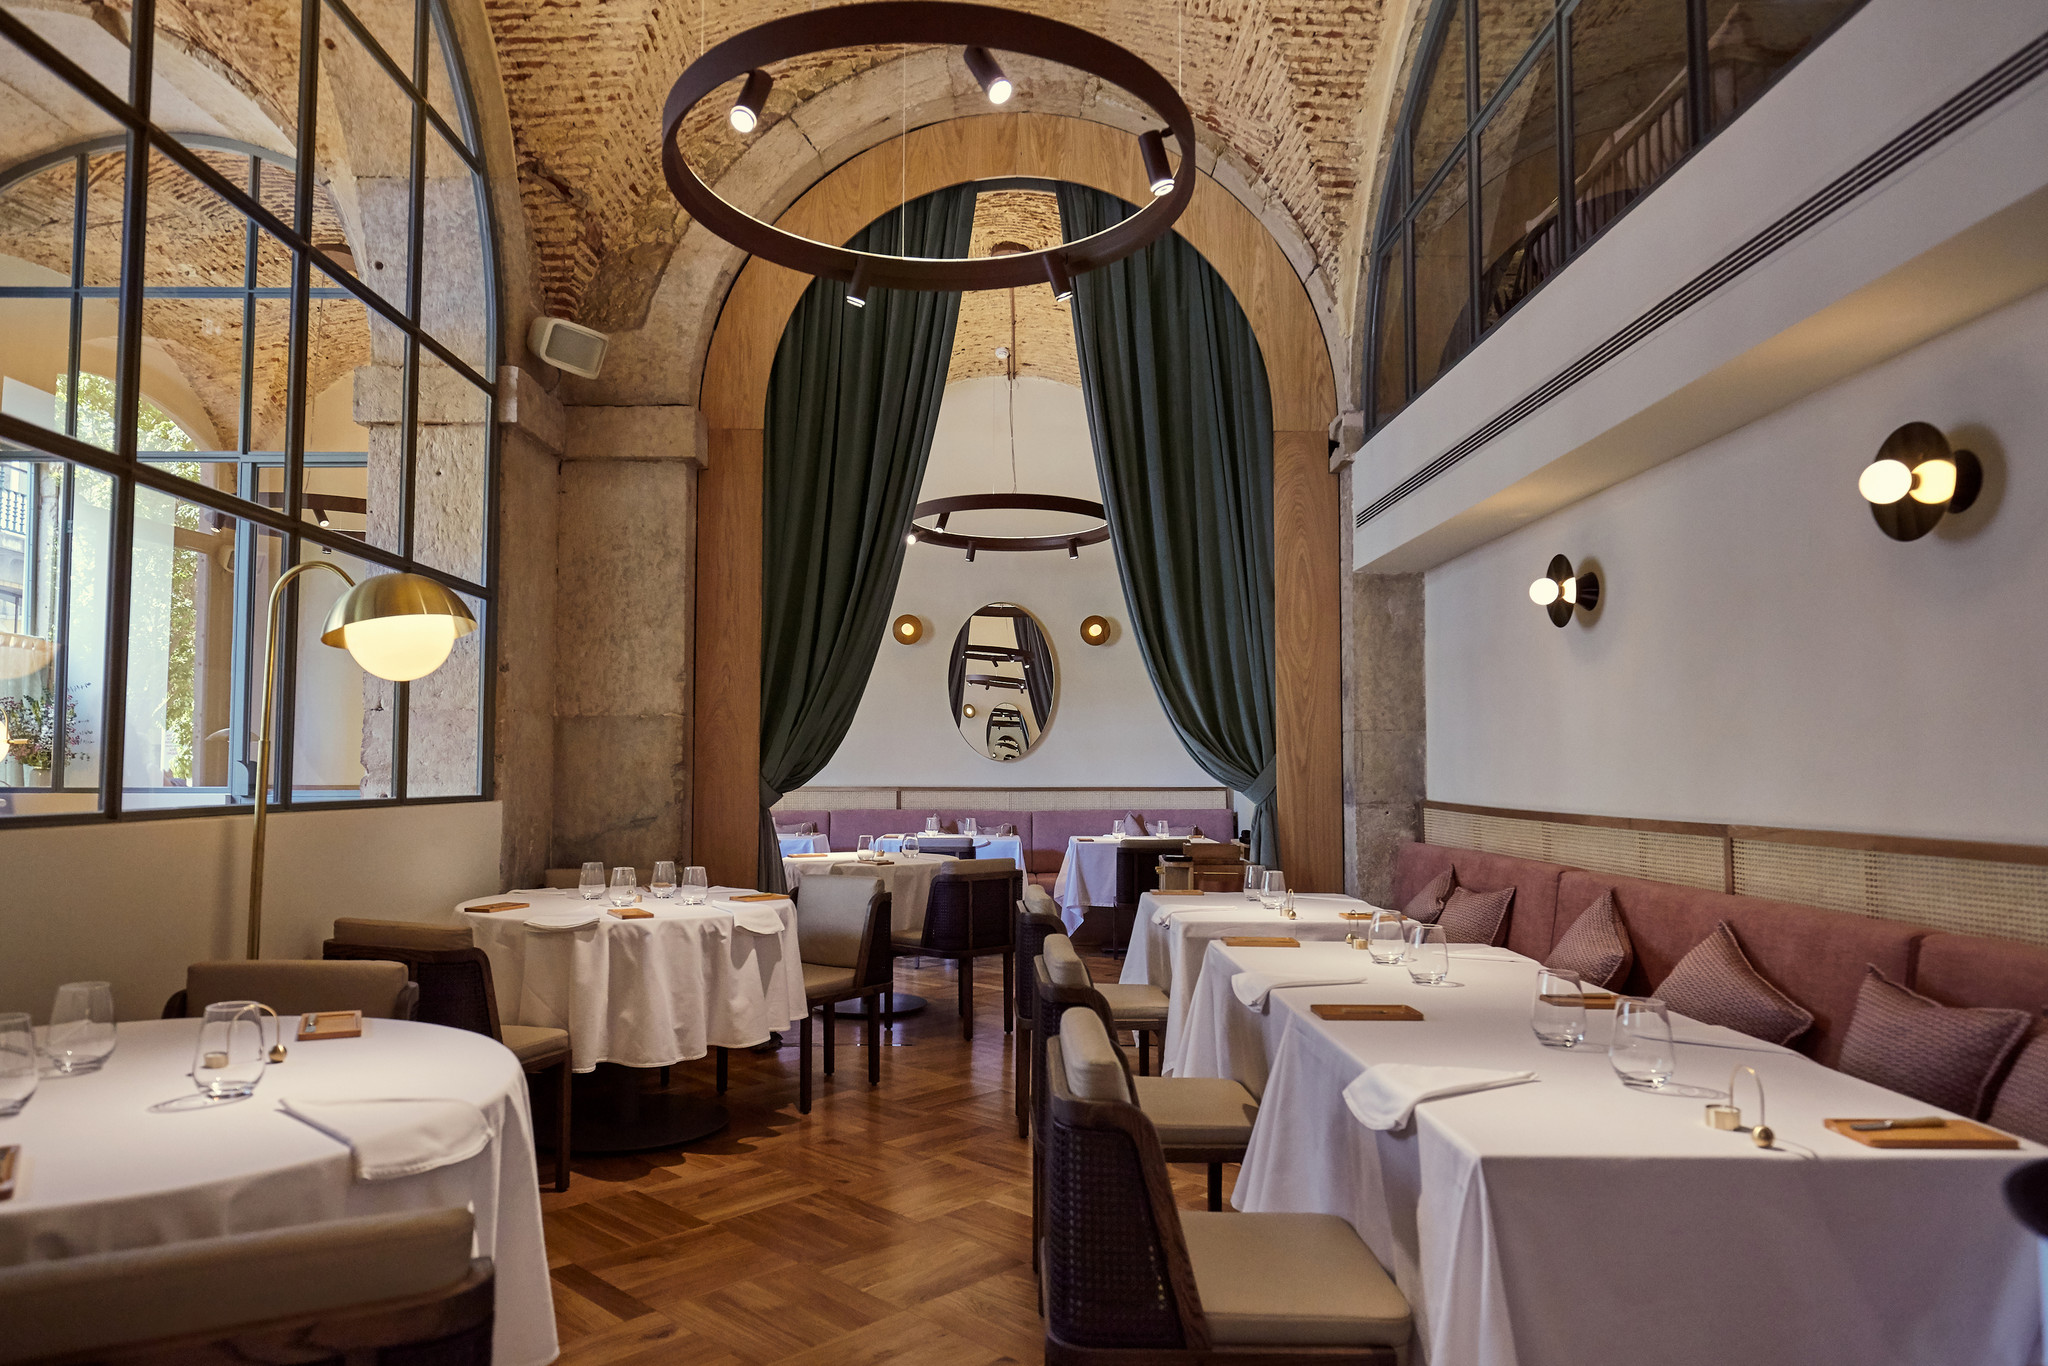 Fine Dining in Lisbon: Discover the Incredible Belcanto Restaurant